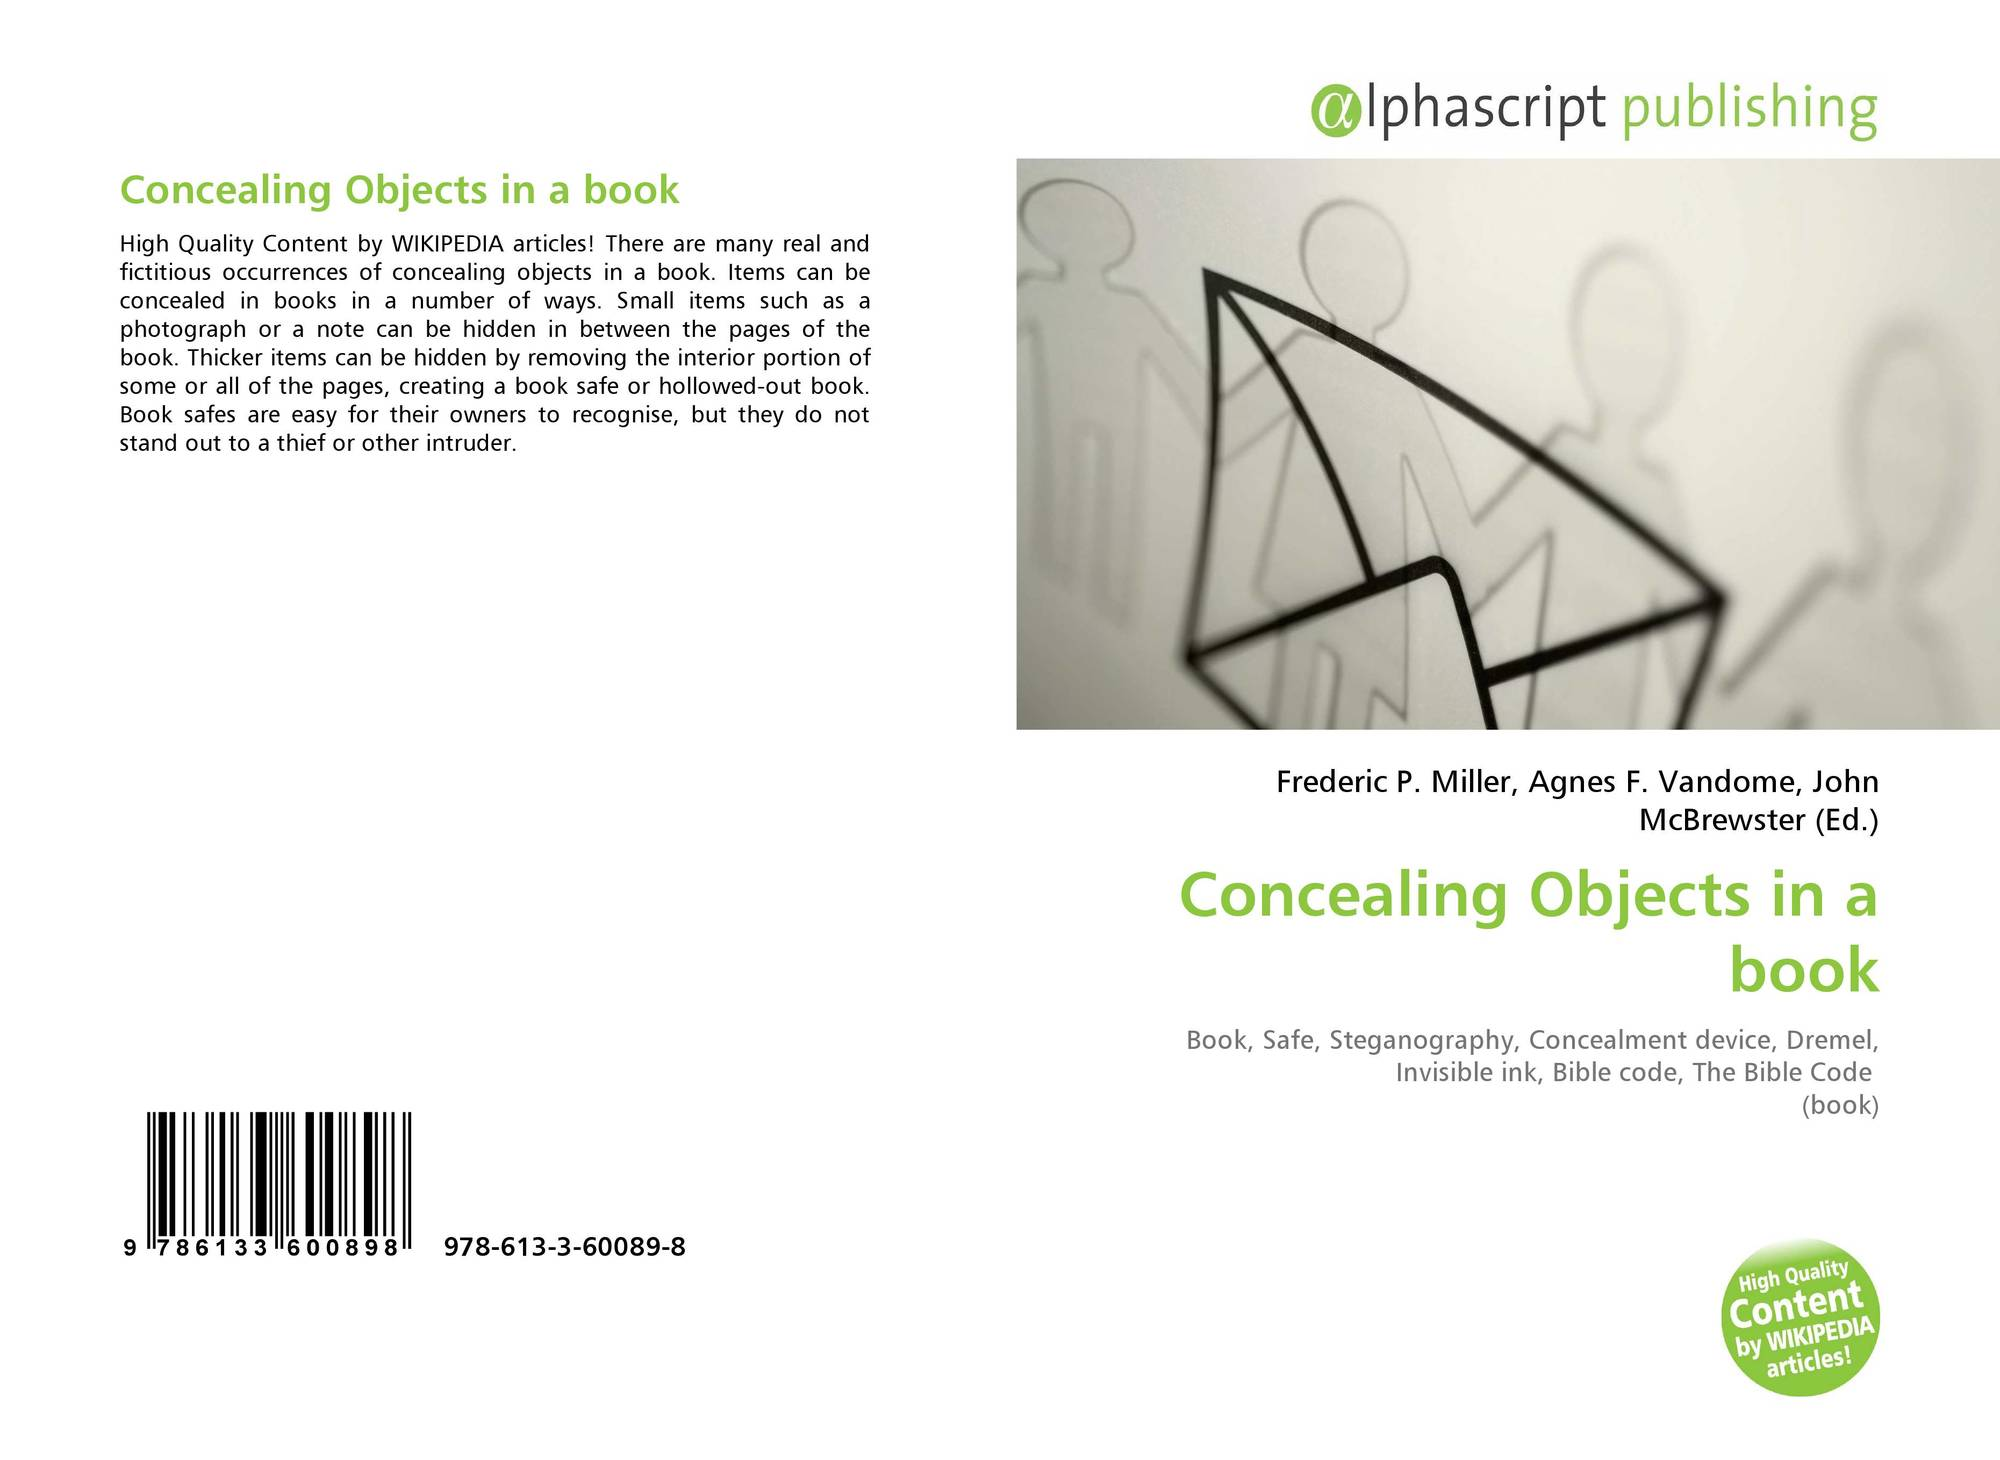 Concealing Objects in a book, 978-613-3-60089-8, 6133600896